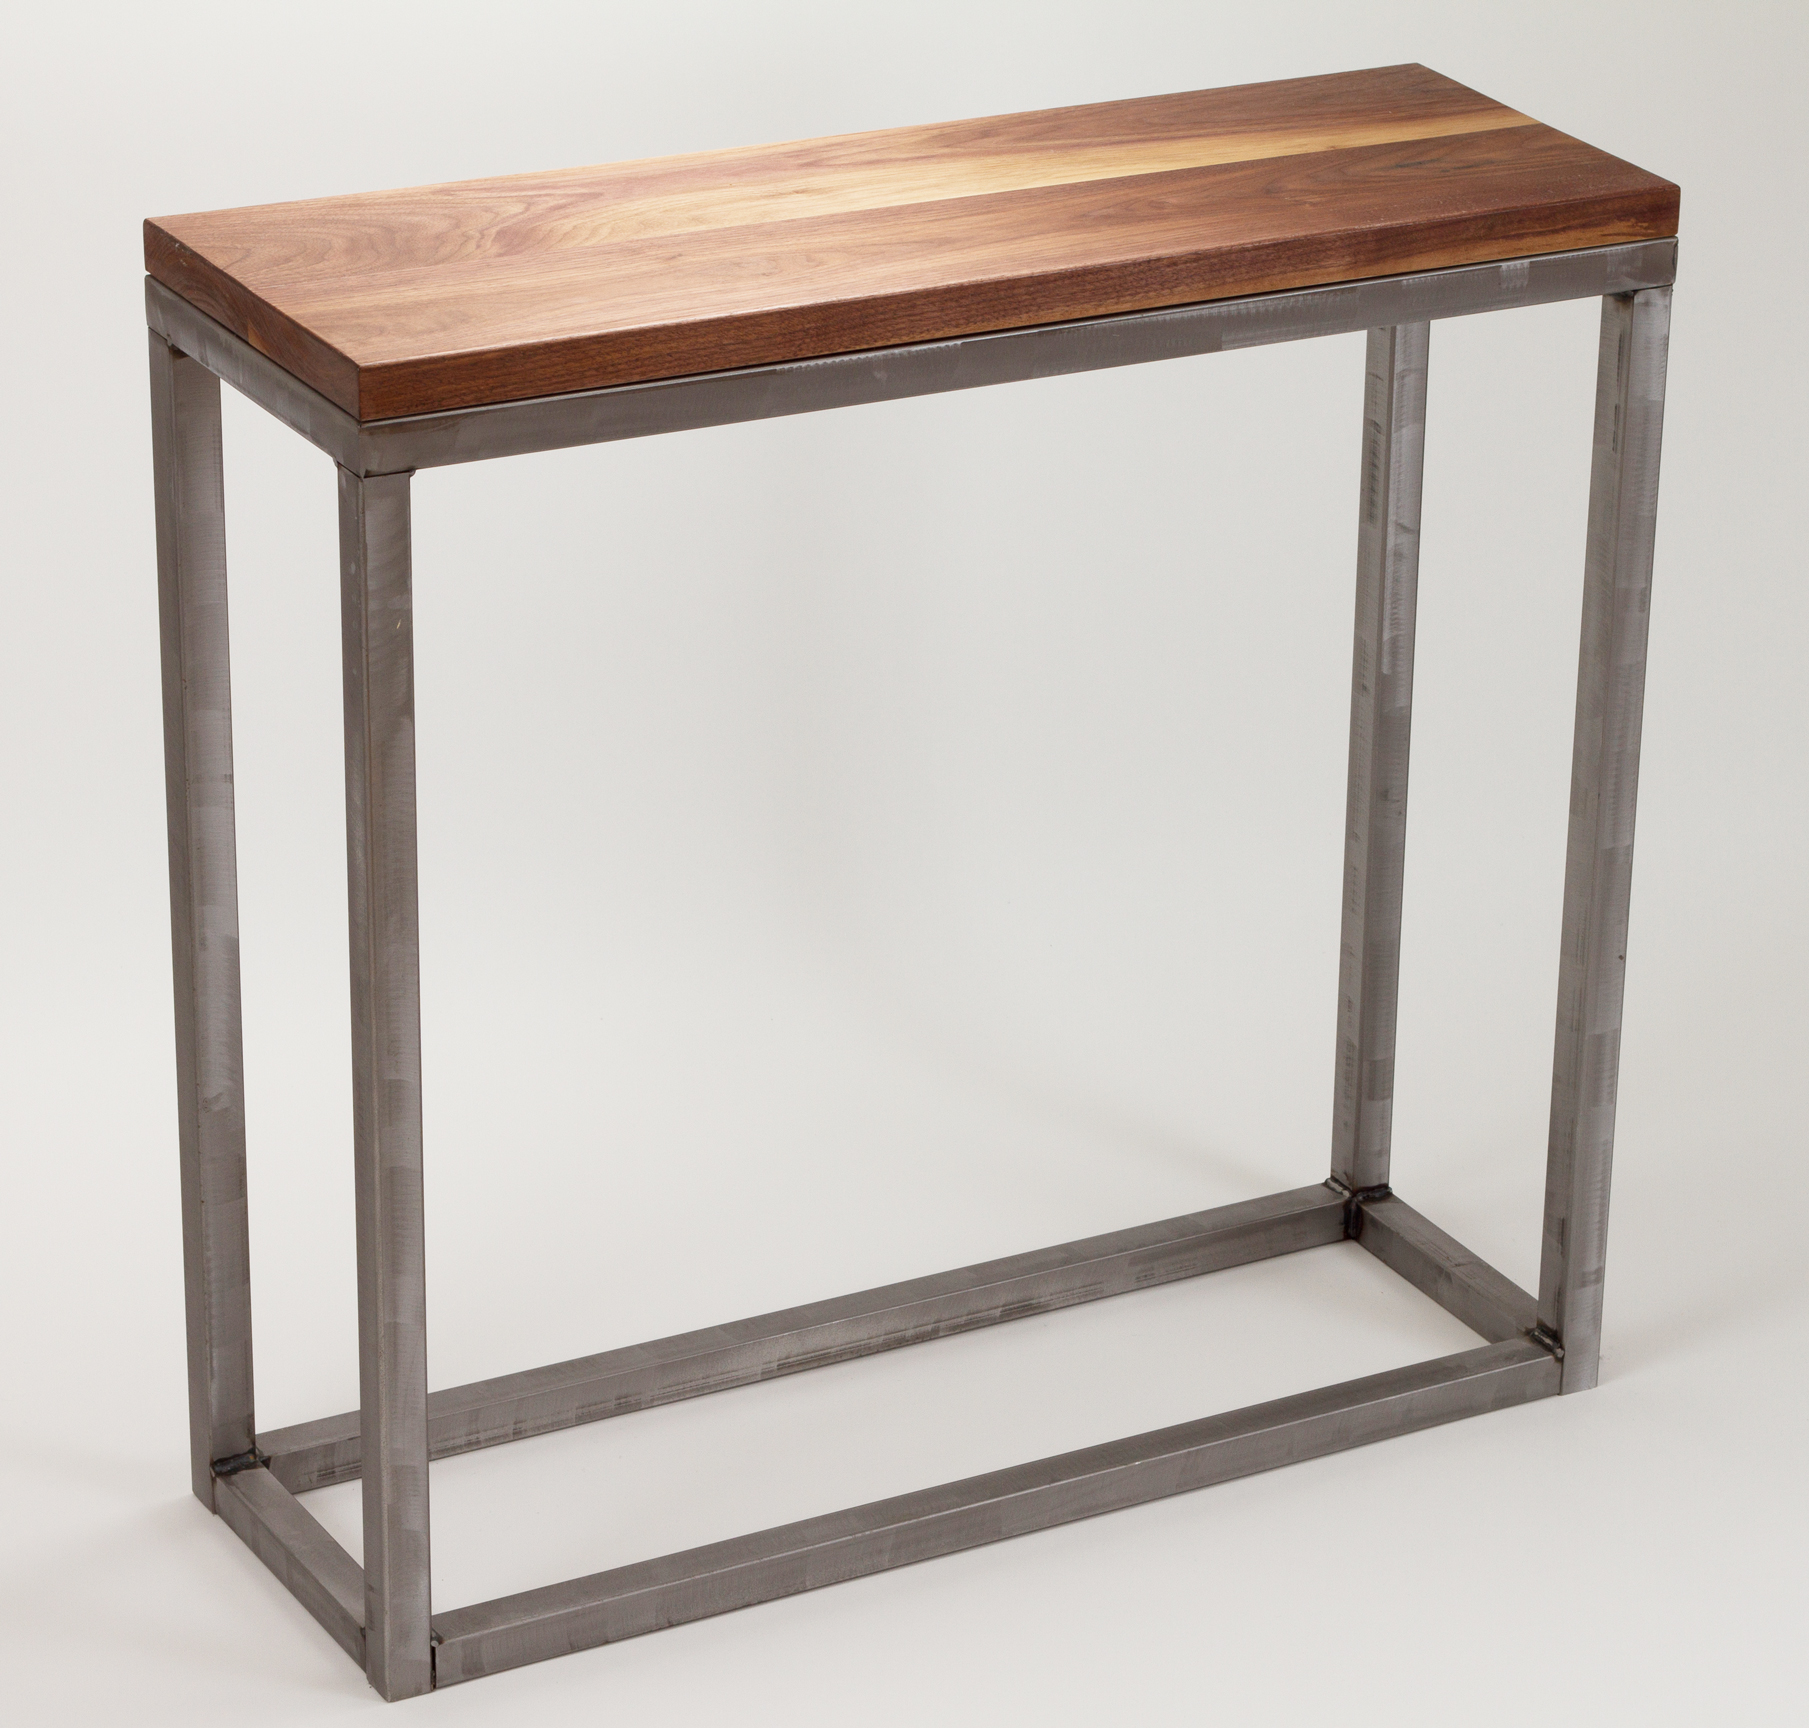 Modern Metal Box Frame Entry Table/Console Solid Wood Living Room ...